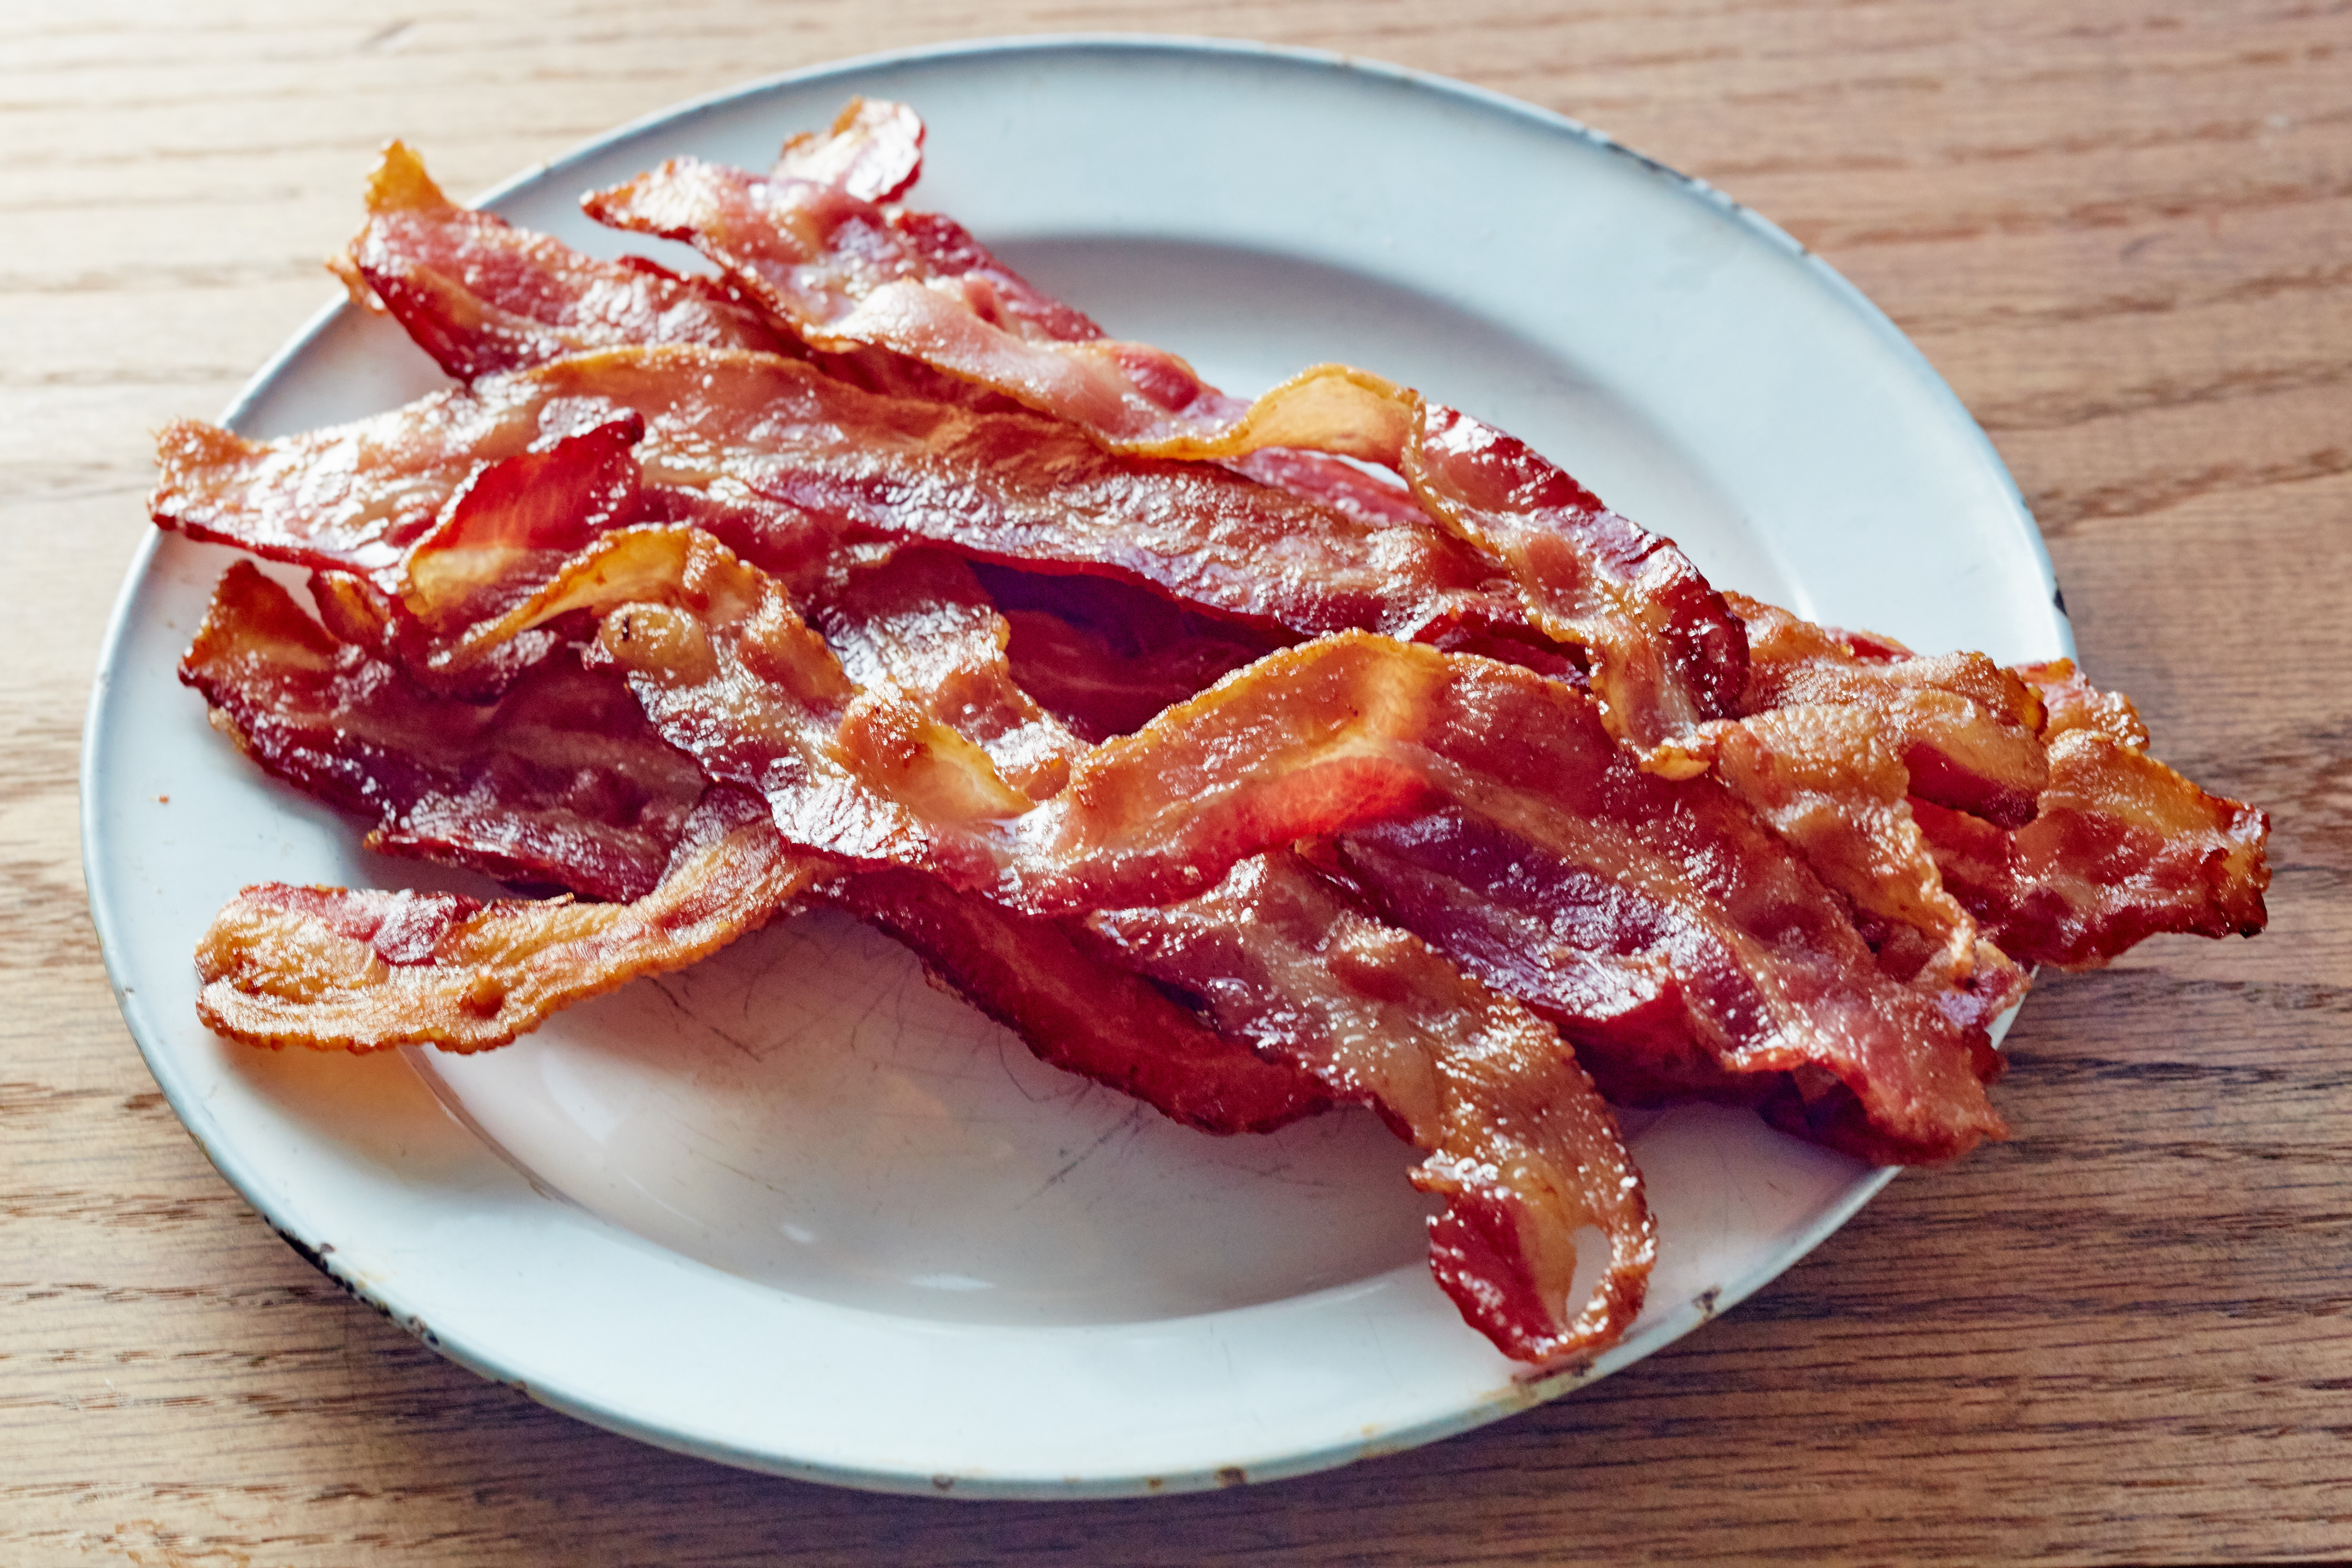 How To Cook Bacon on the Stovetop